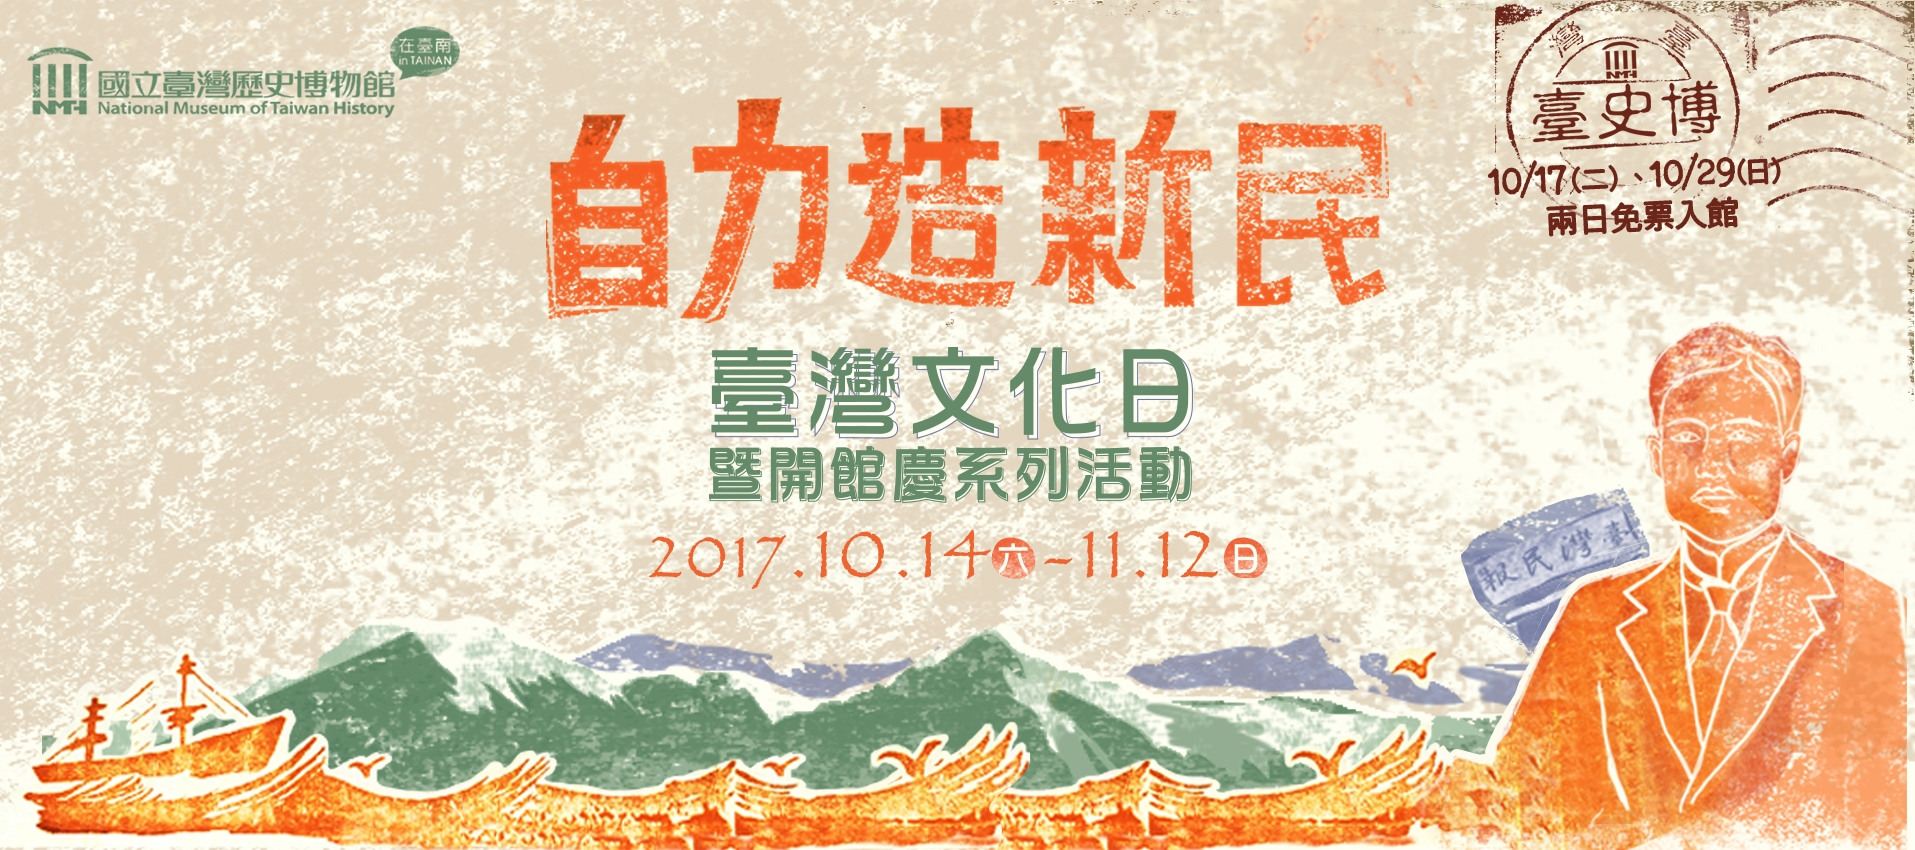 Taiwan Culture Day events (Photo courtesy of National Museum of Taiwan History)